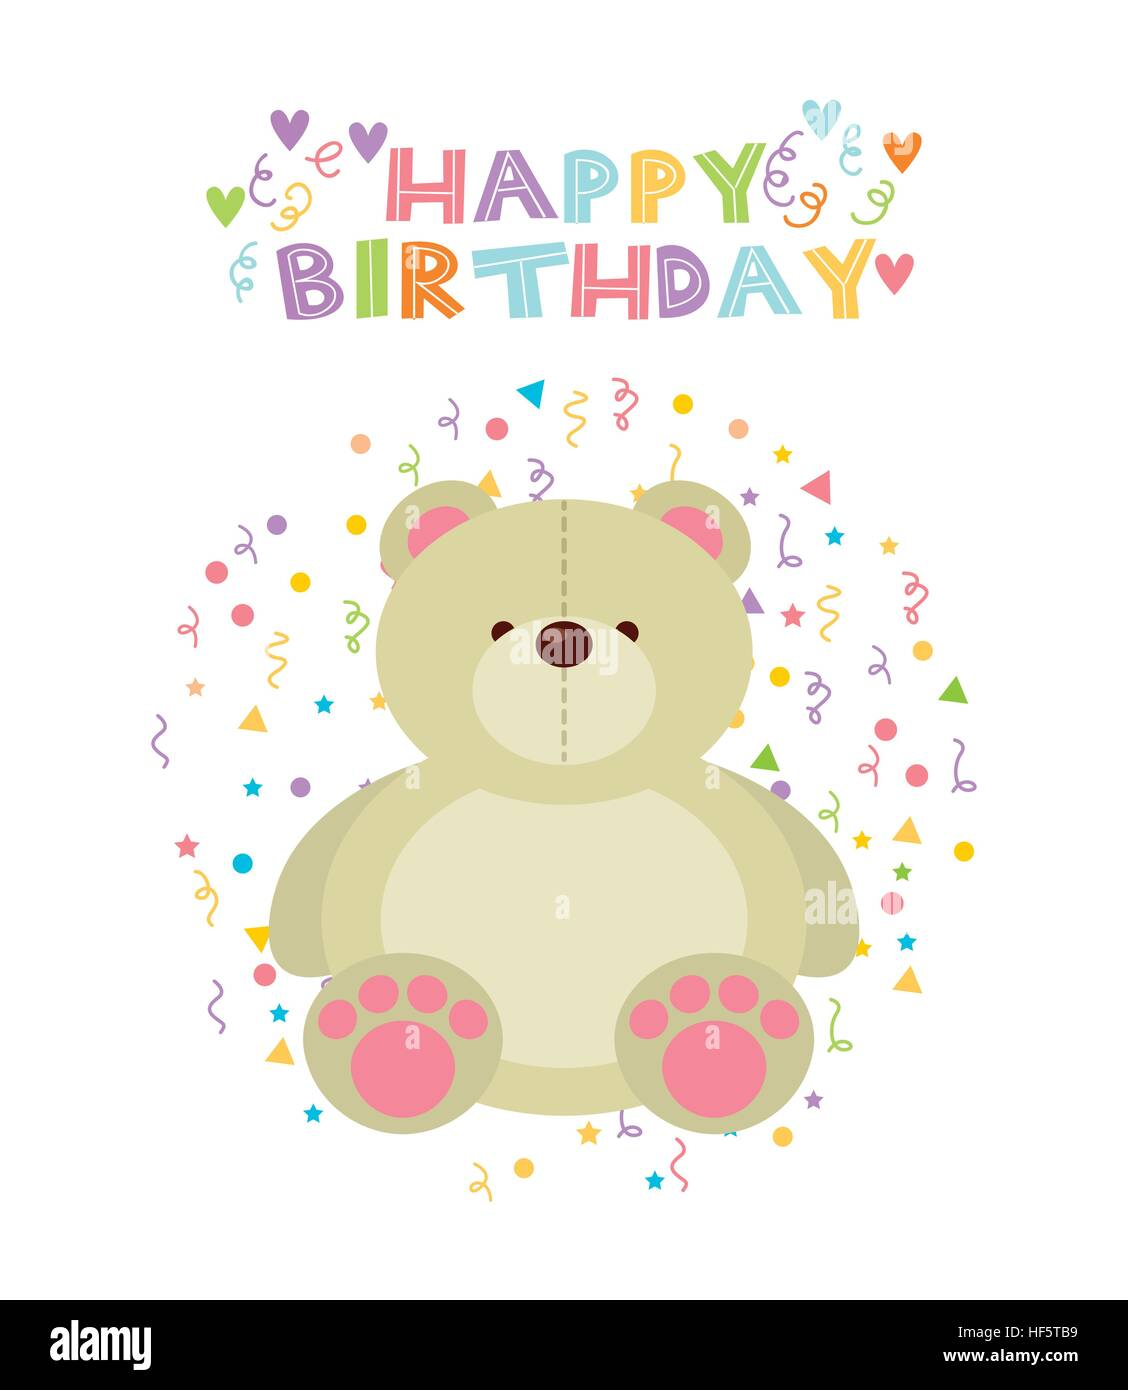 Happy Birthday Card With Cute Bear Icon Over White Background Colorful Design Vector Illustration